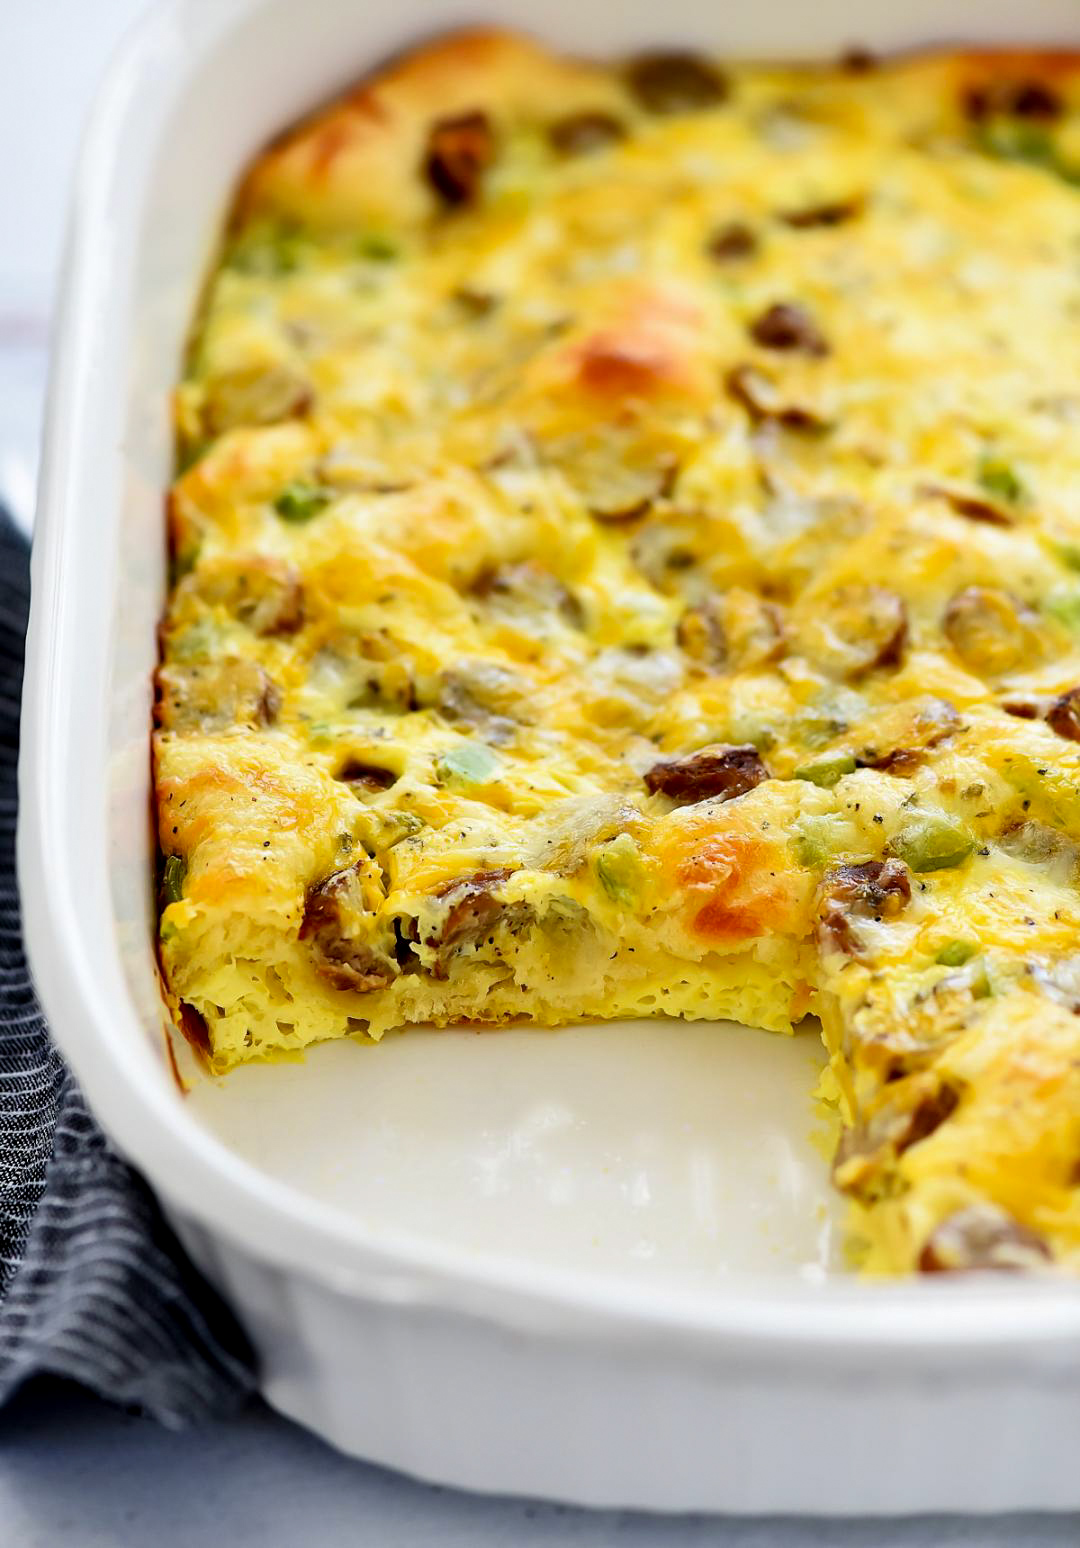 Breakfast Bake is filled with a delicious egg mixture, sausage and green bell peppers over a crescent crust. Life-in-the-Lofthouse.com